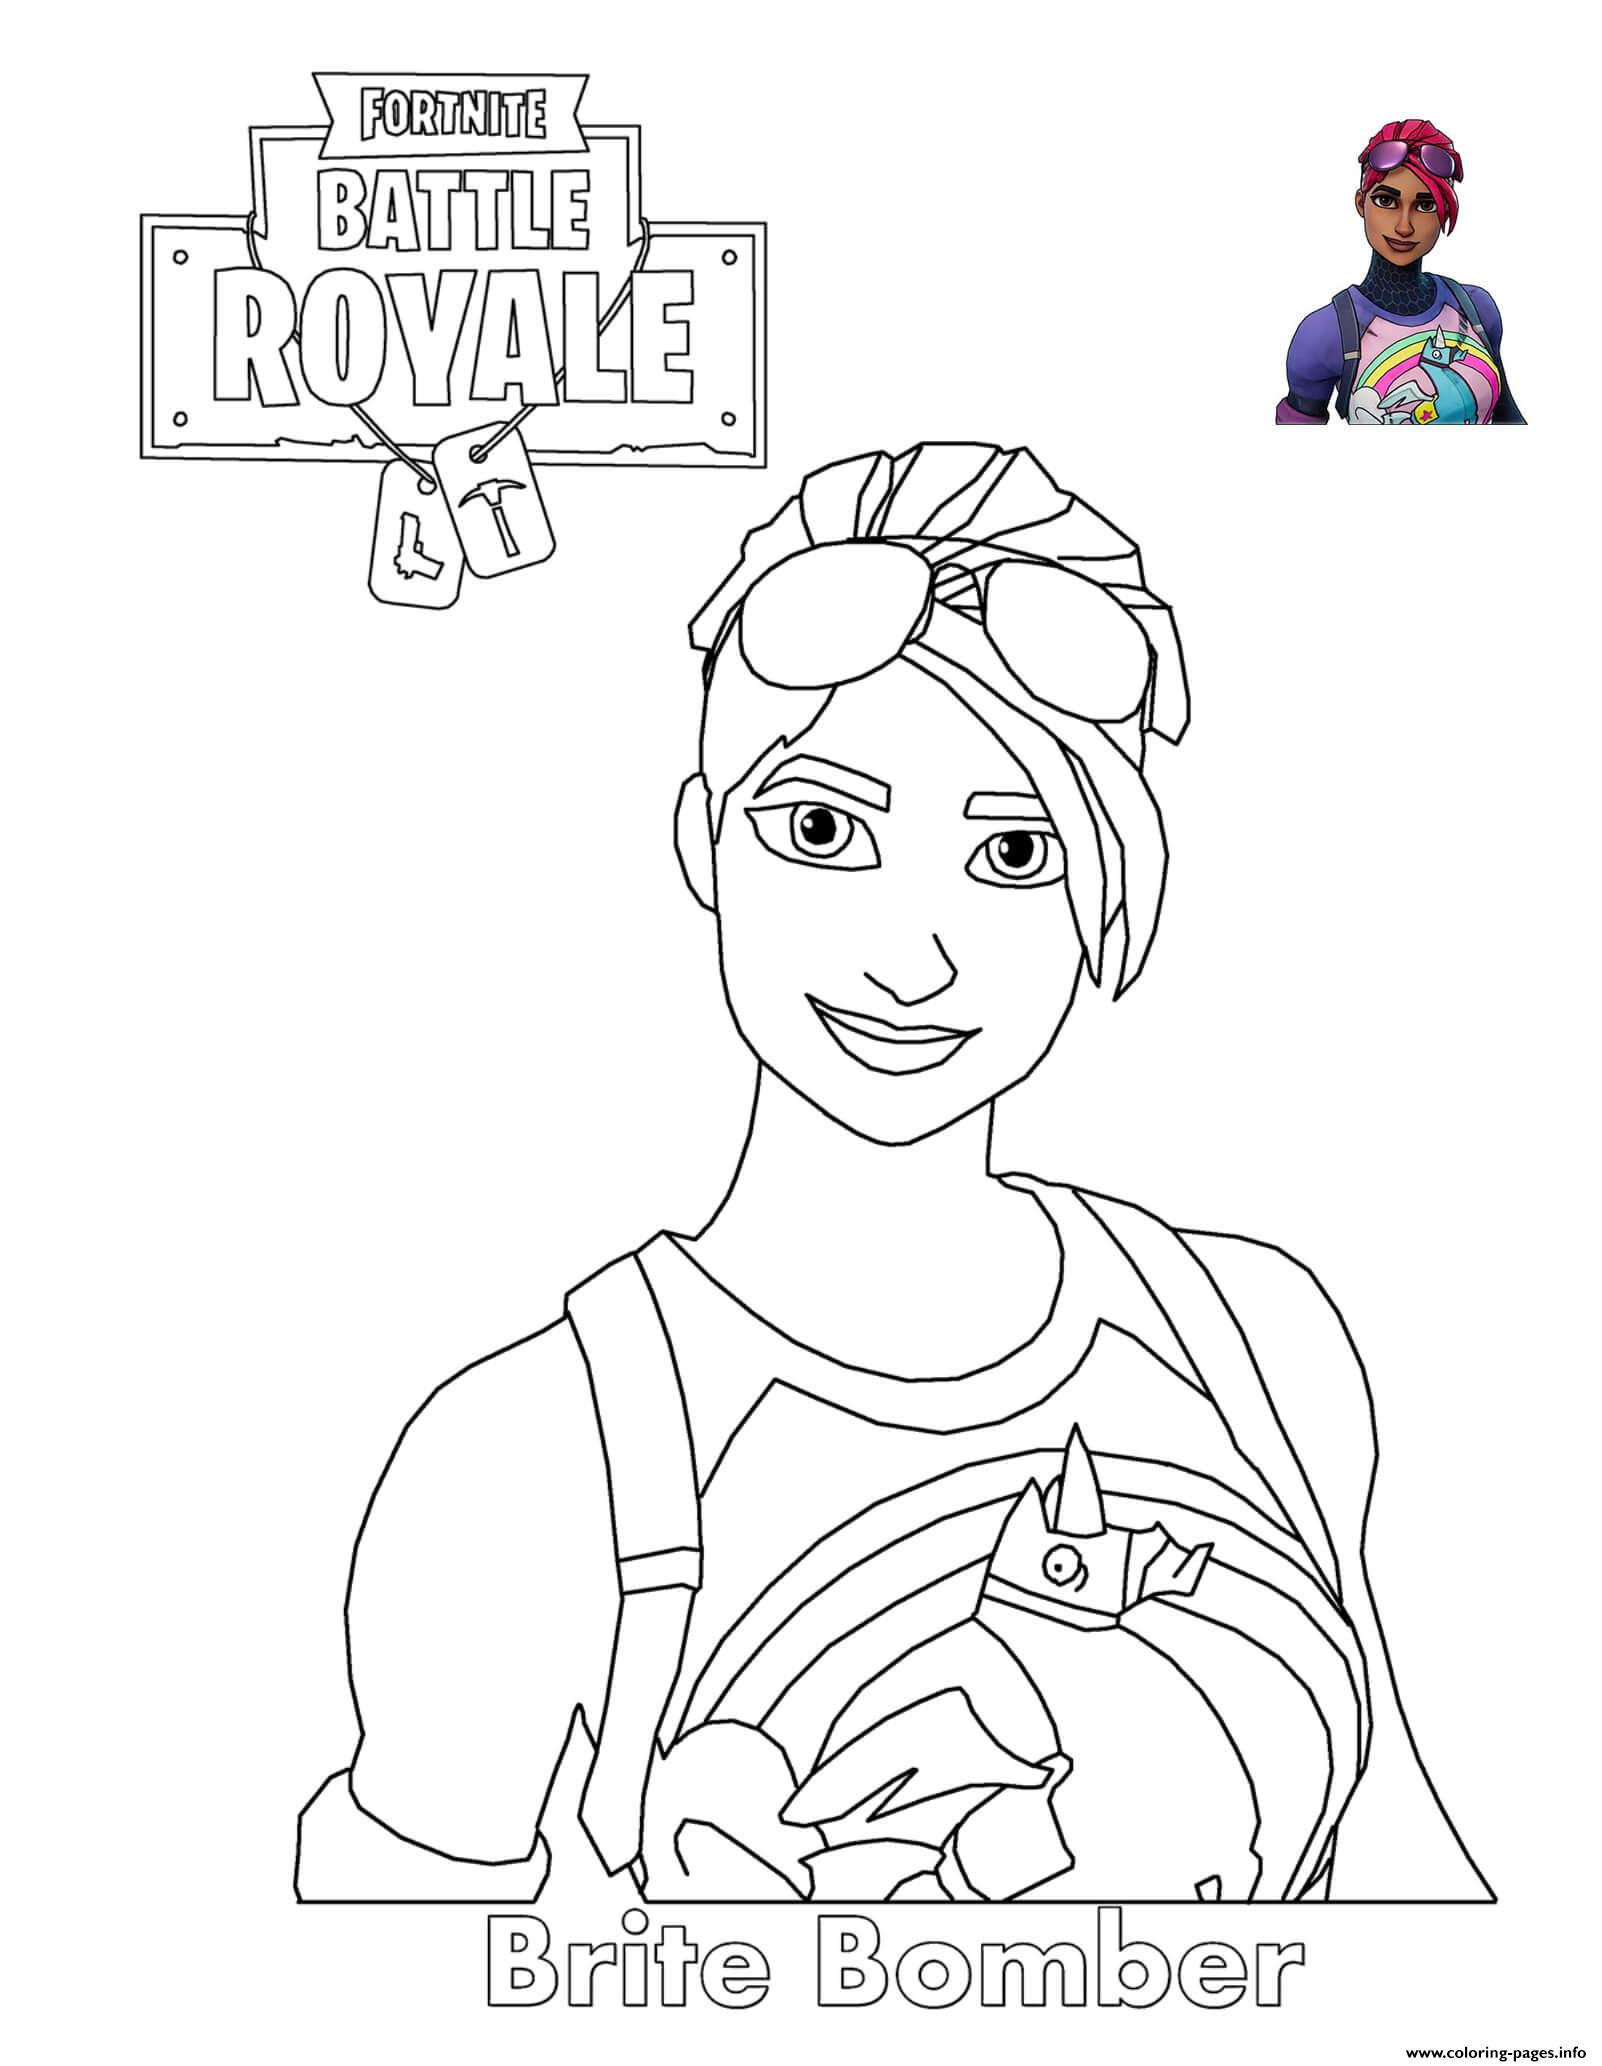 Brite Bomber Fortnite Battle Royale Coloring Pages Printable